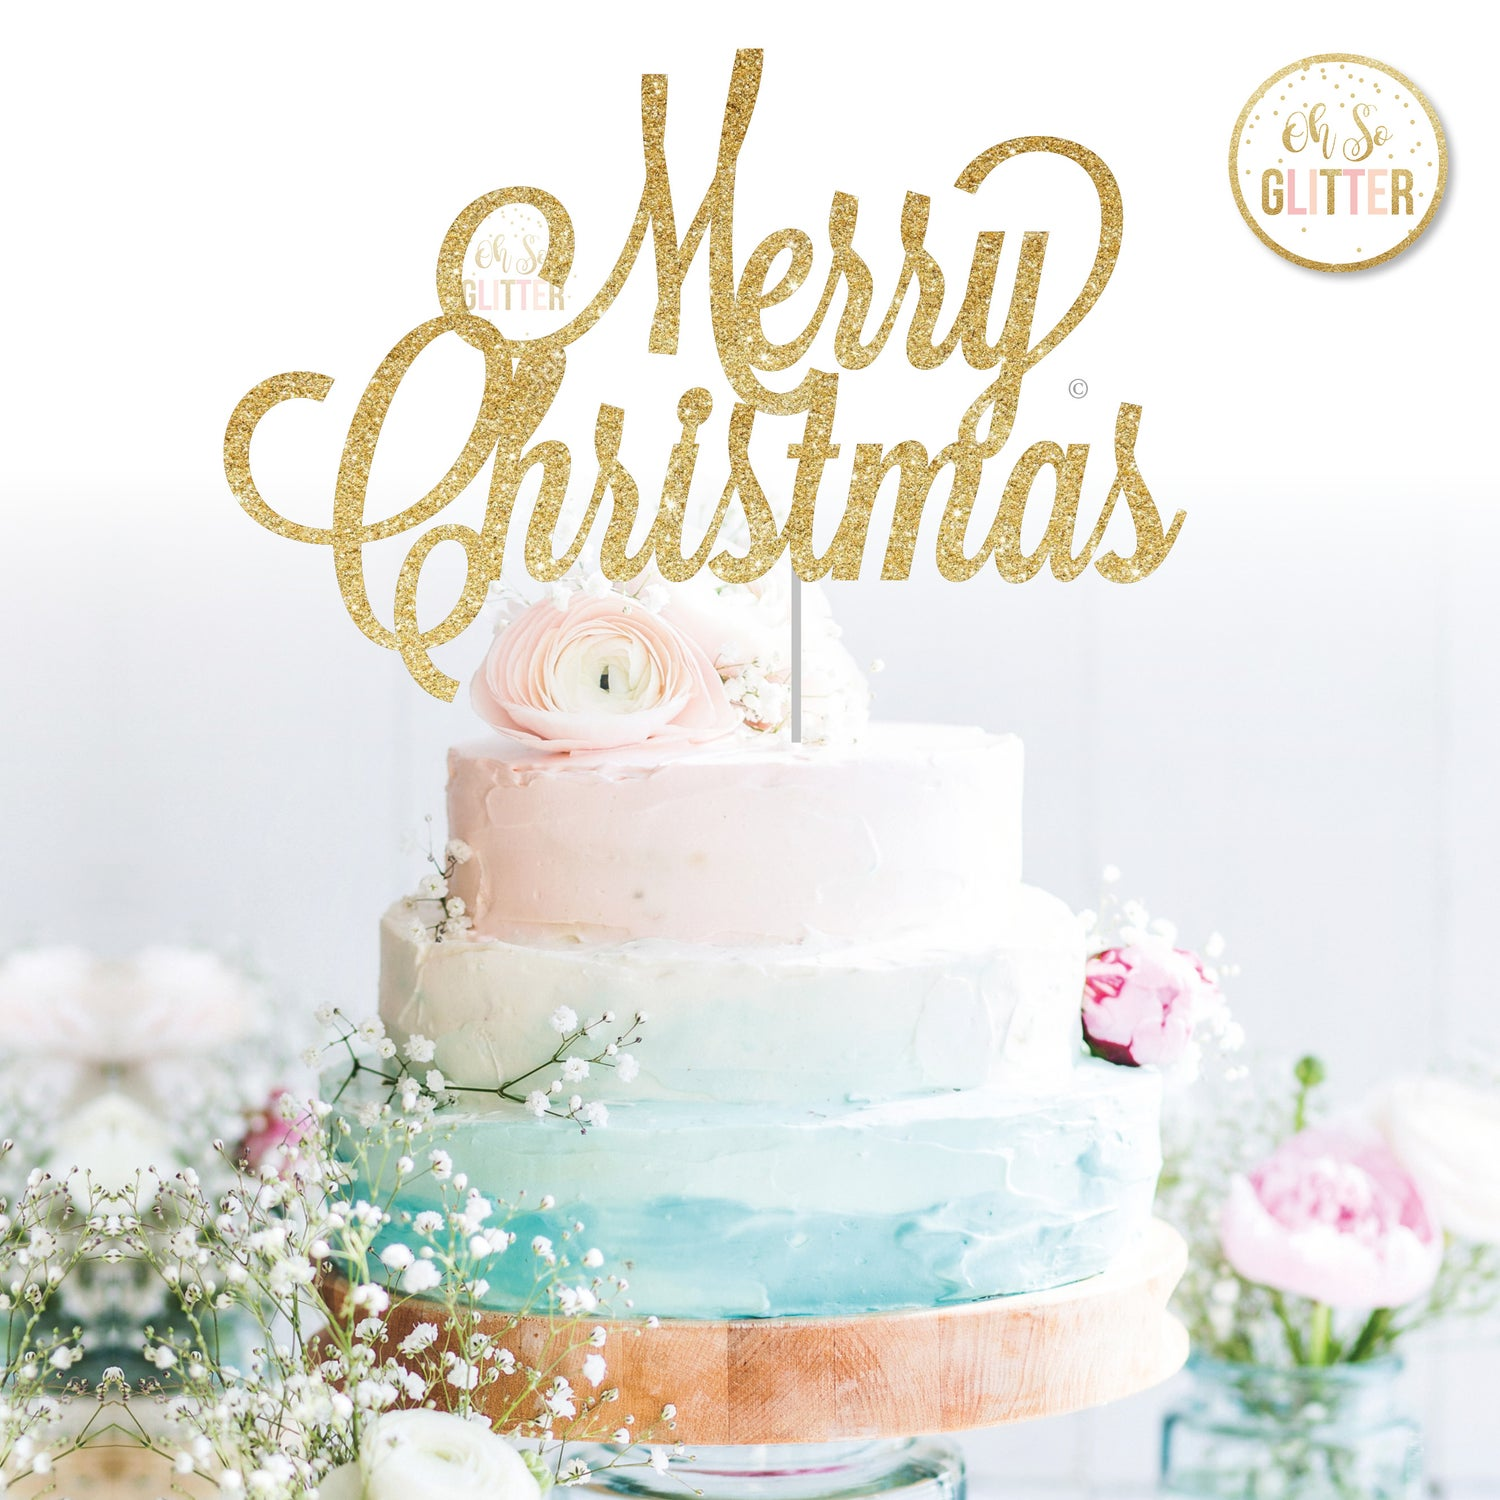 Image of Merry Christmas cake topper